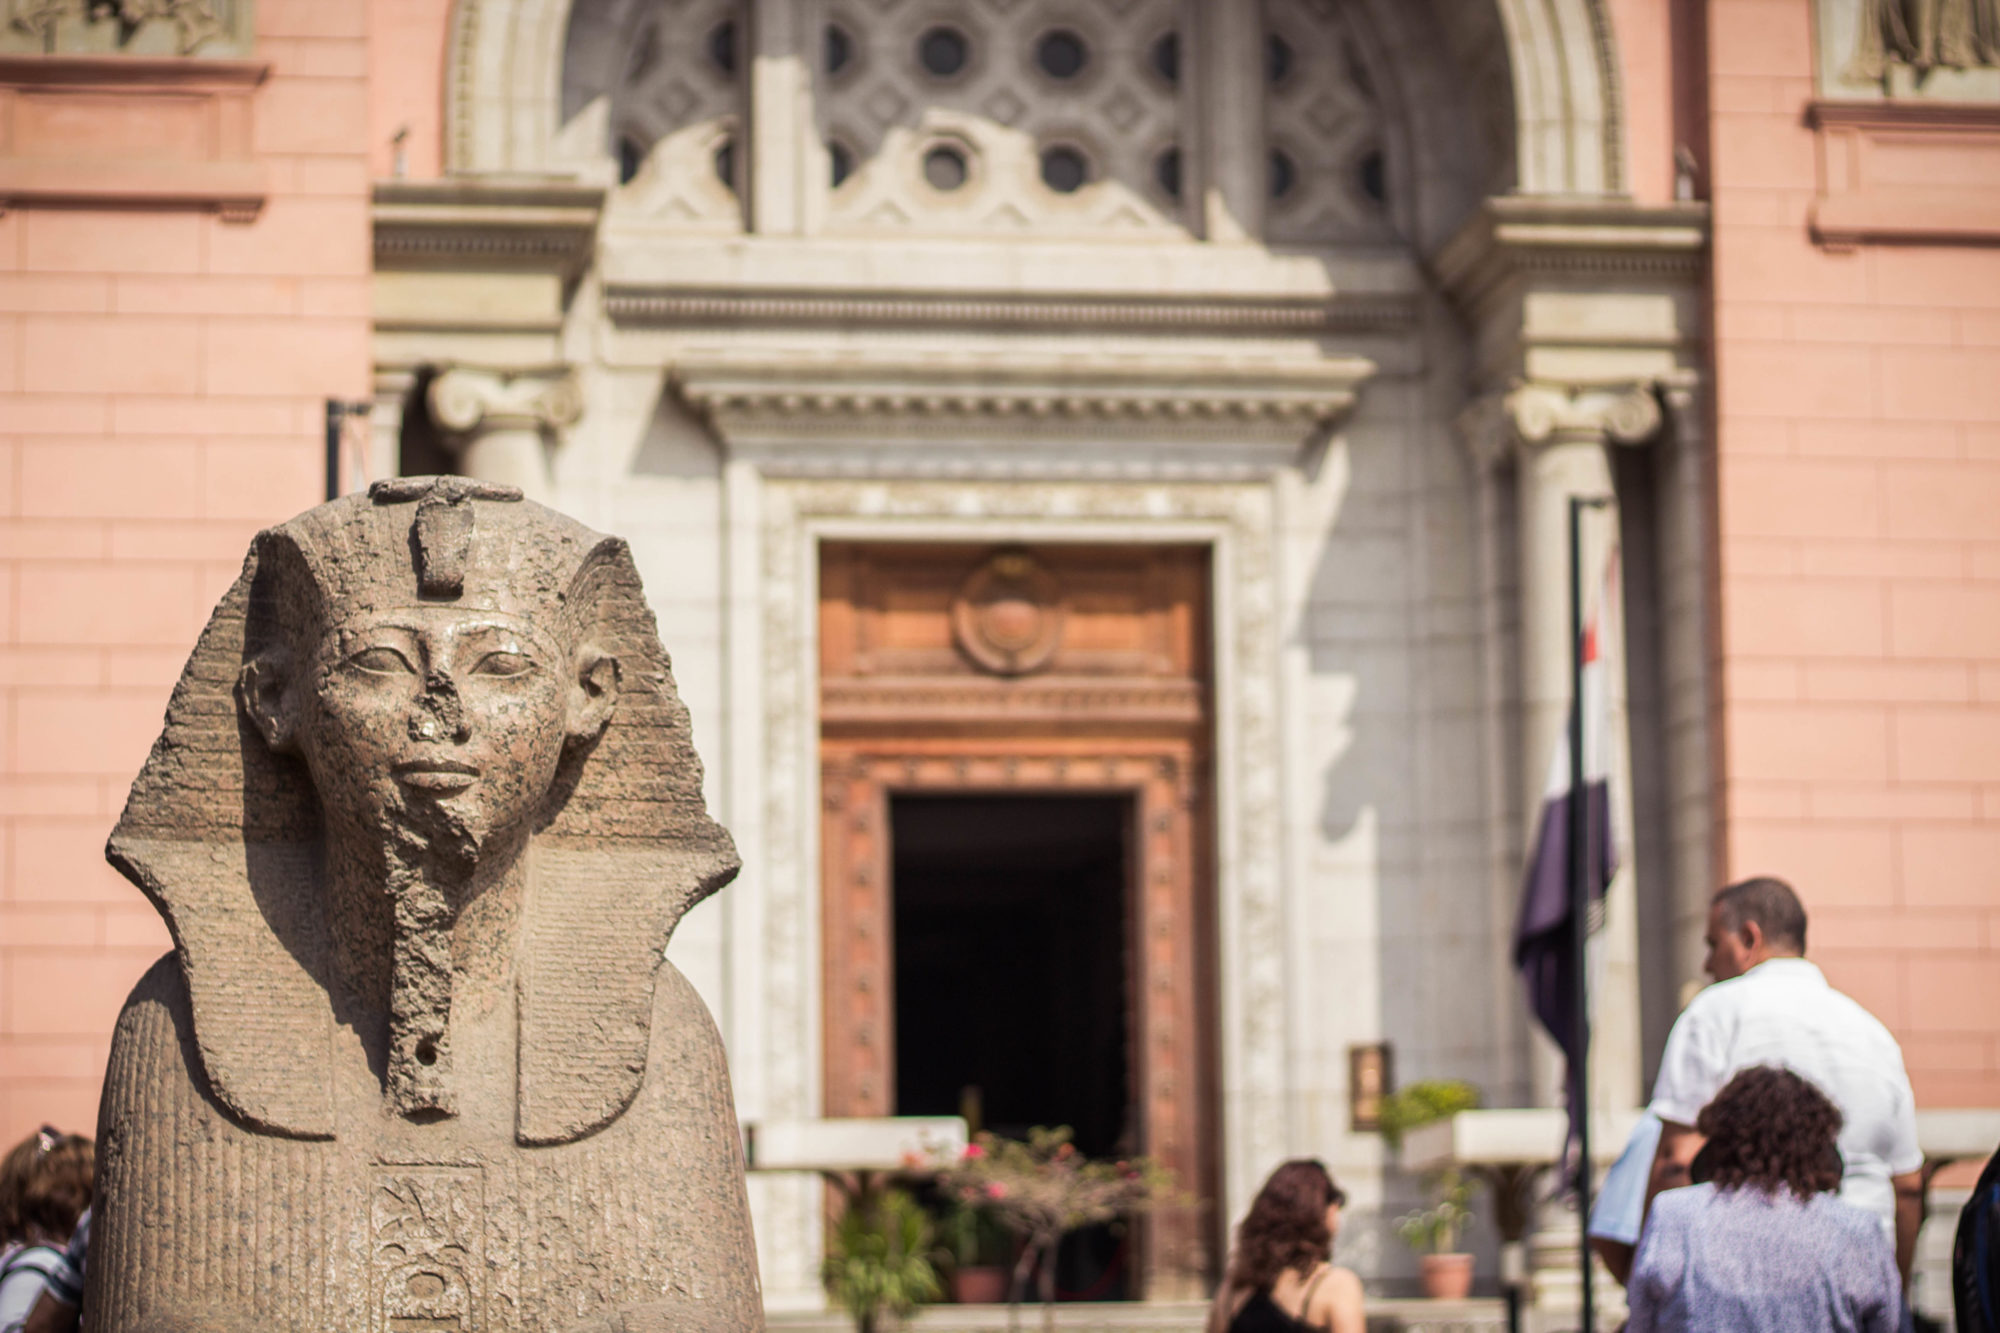 The Egyptian Museum in Cairo, Egypt